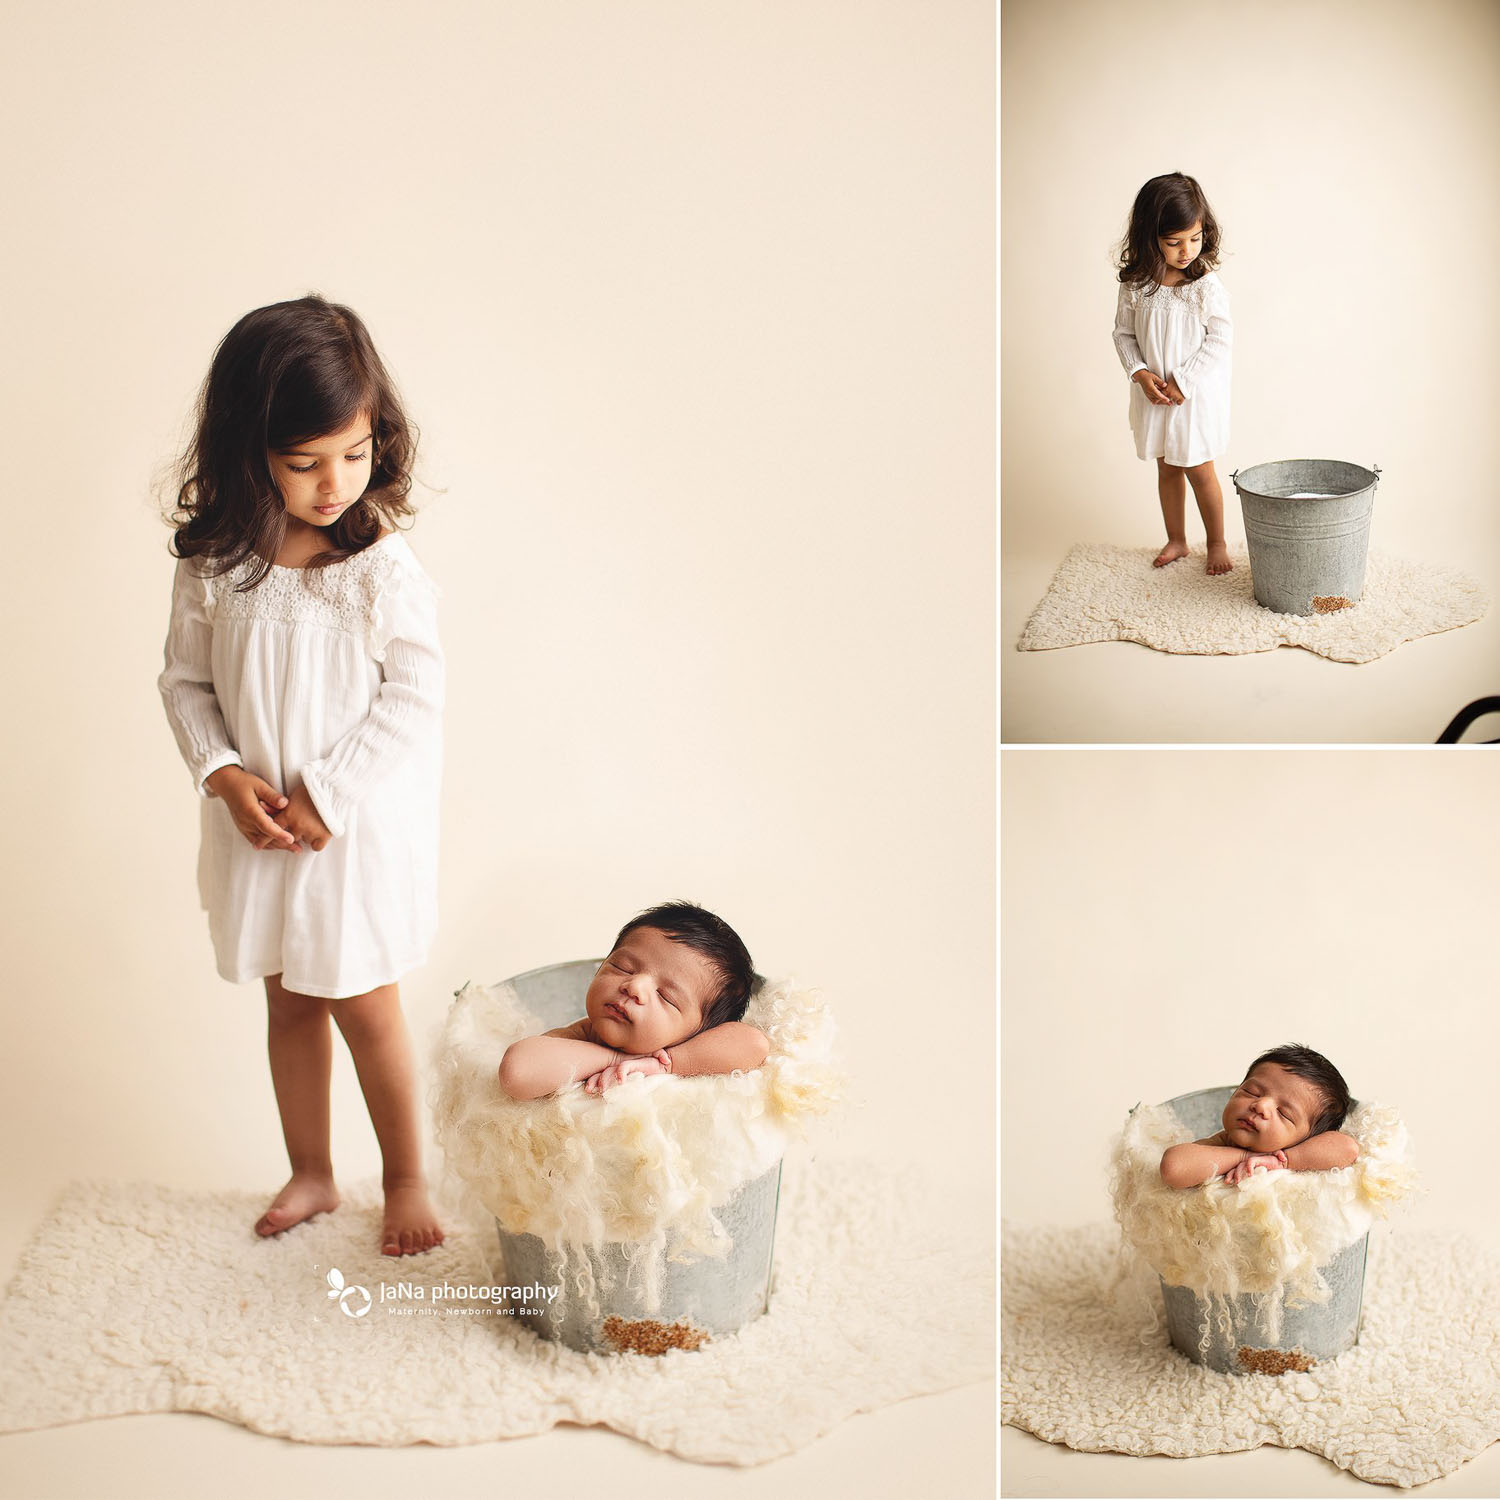 newborn photography in a bucket with sibling - photoshop - safety